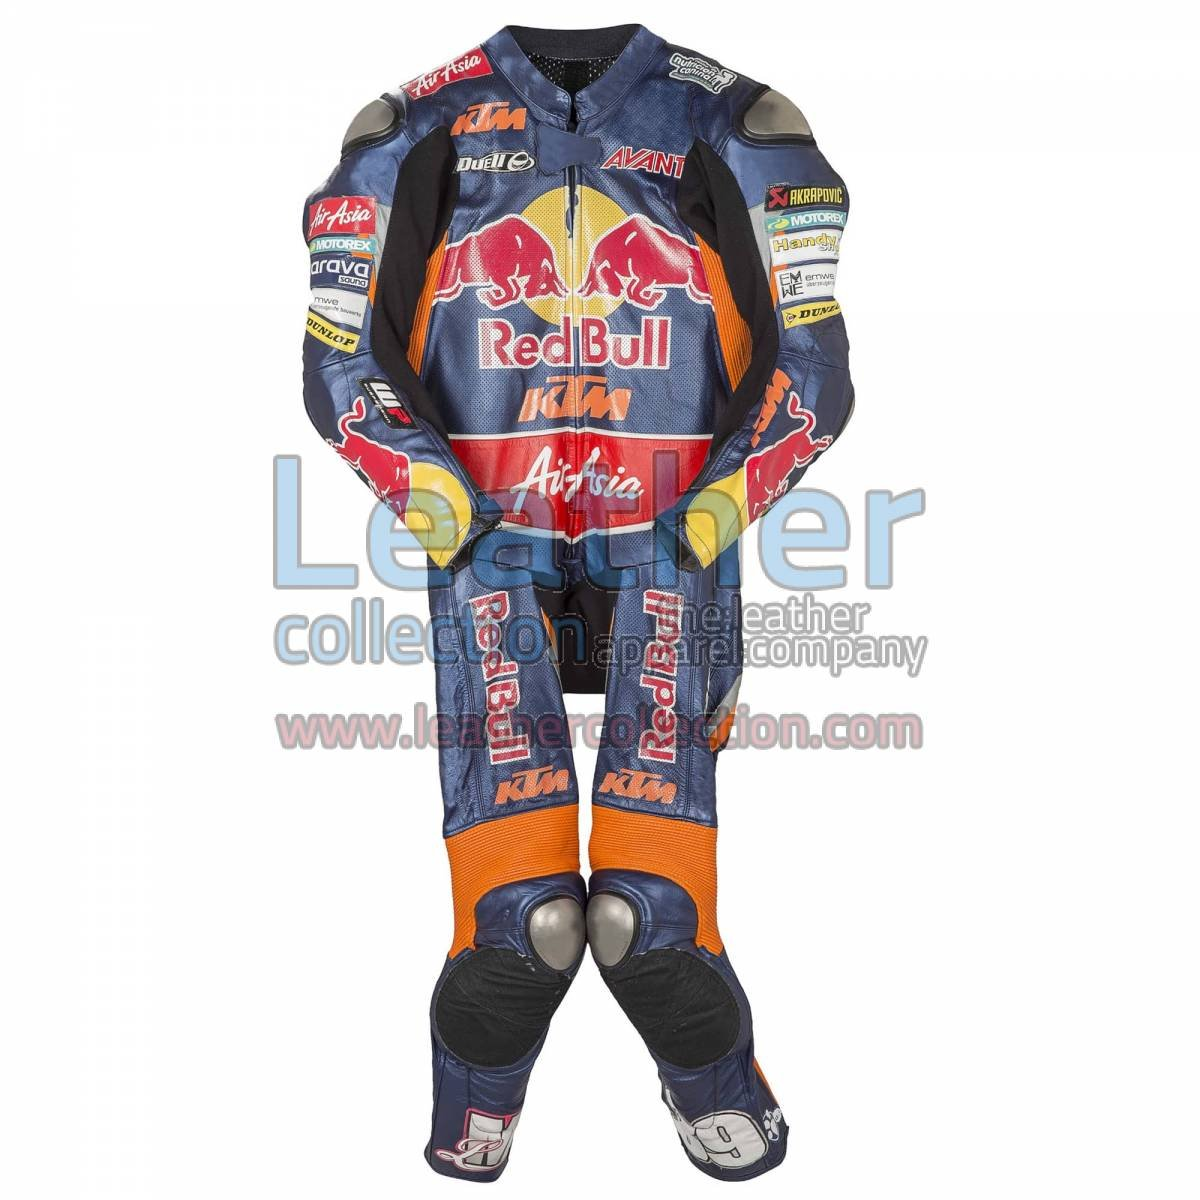 Luis Salom KTM 2013 Leather Suit